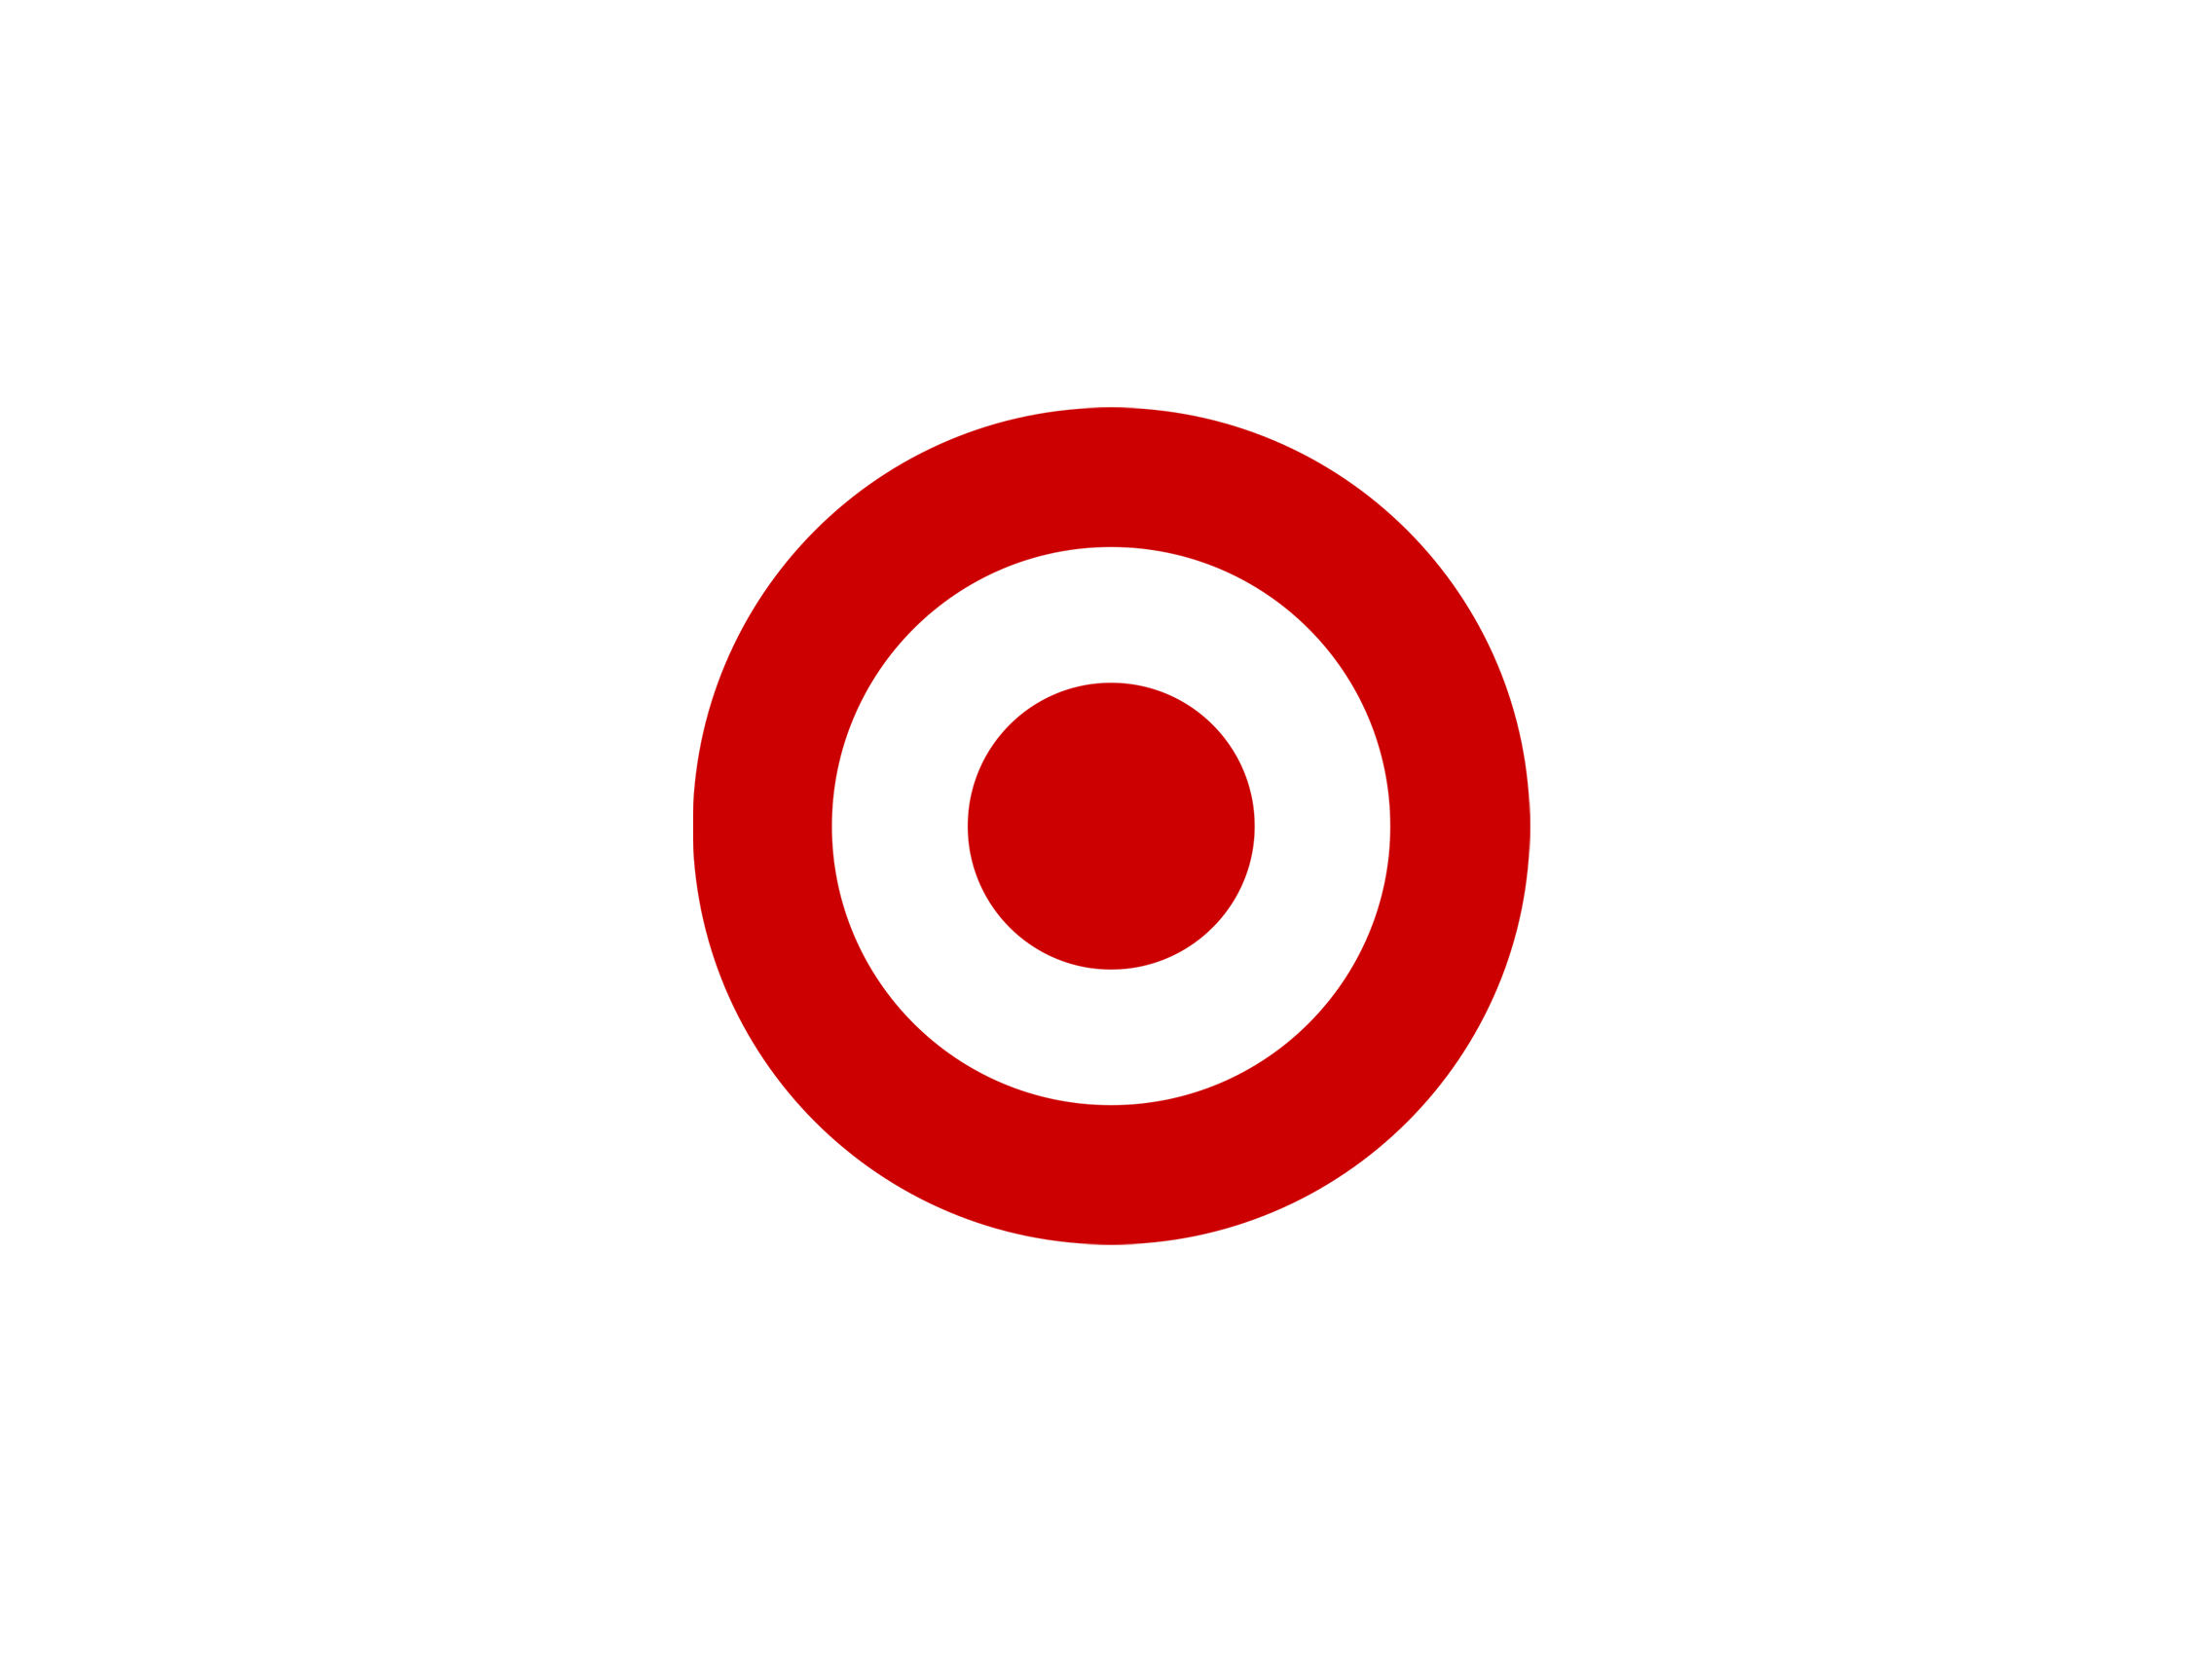 Abstract Symbolic Target Coupons 15 Gifts Target Hacks